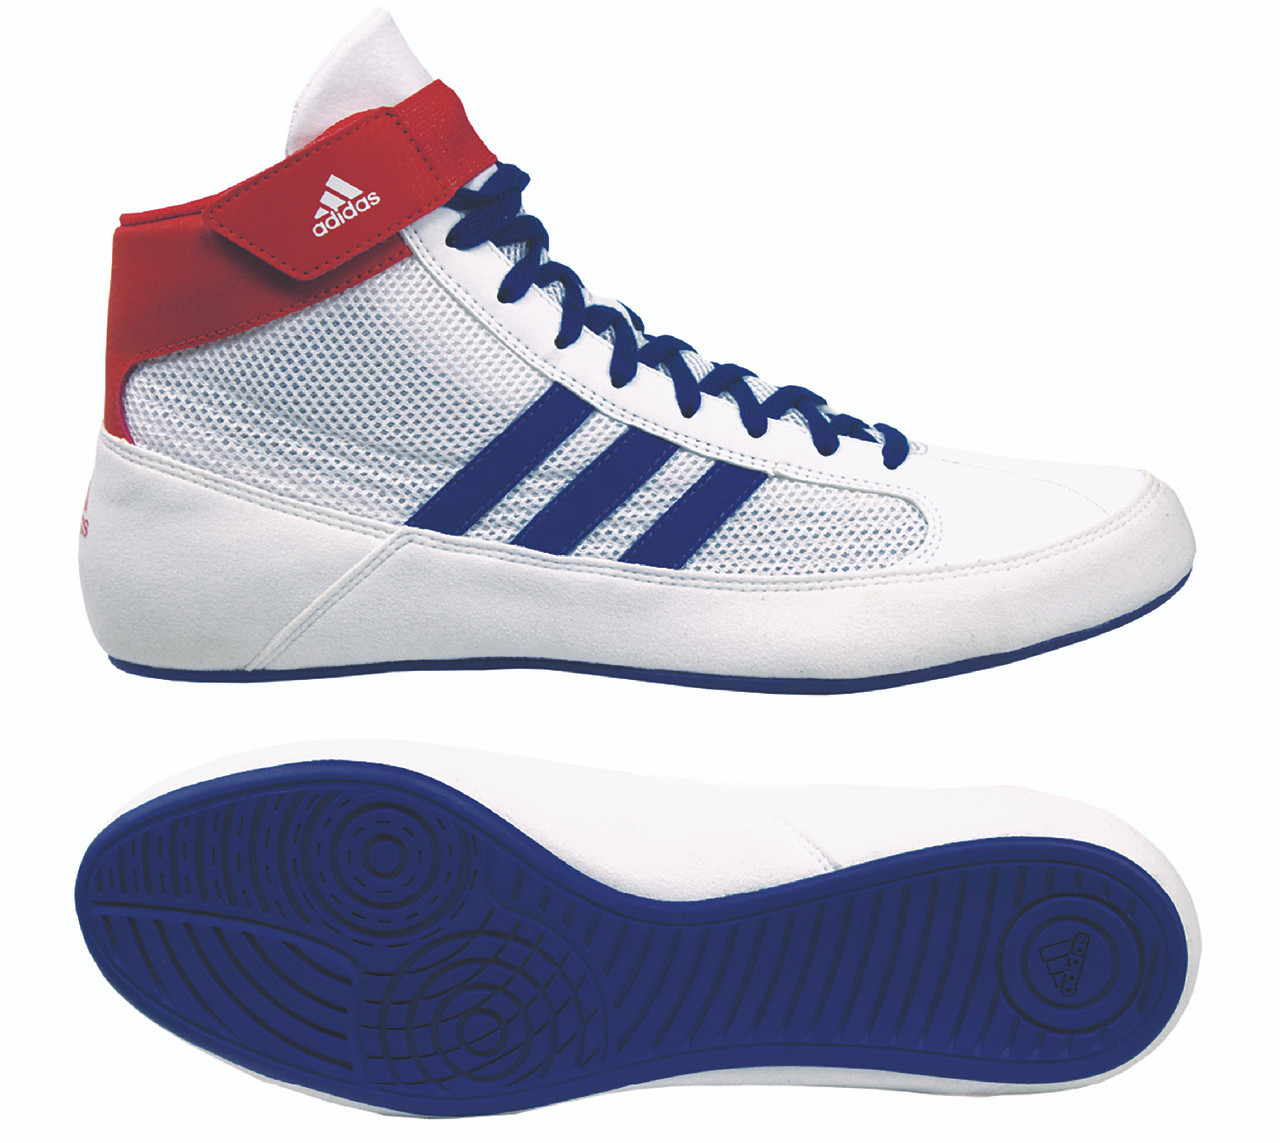 c4f5c056eccbc ADIDAS YOUTH HVC 2 - WHITE/RED/ROYAL - G25909 - NEW FOR 2019